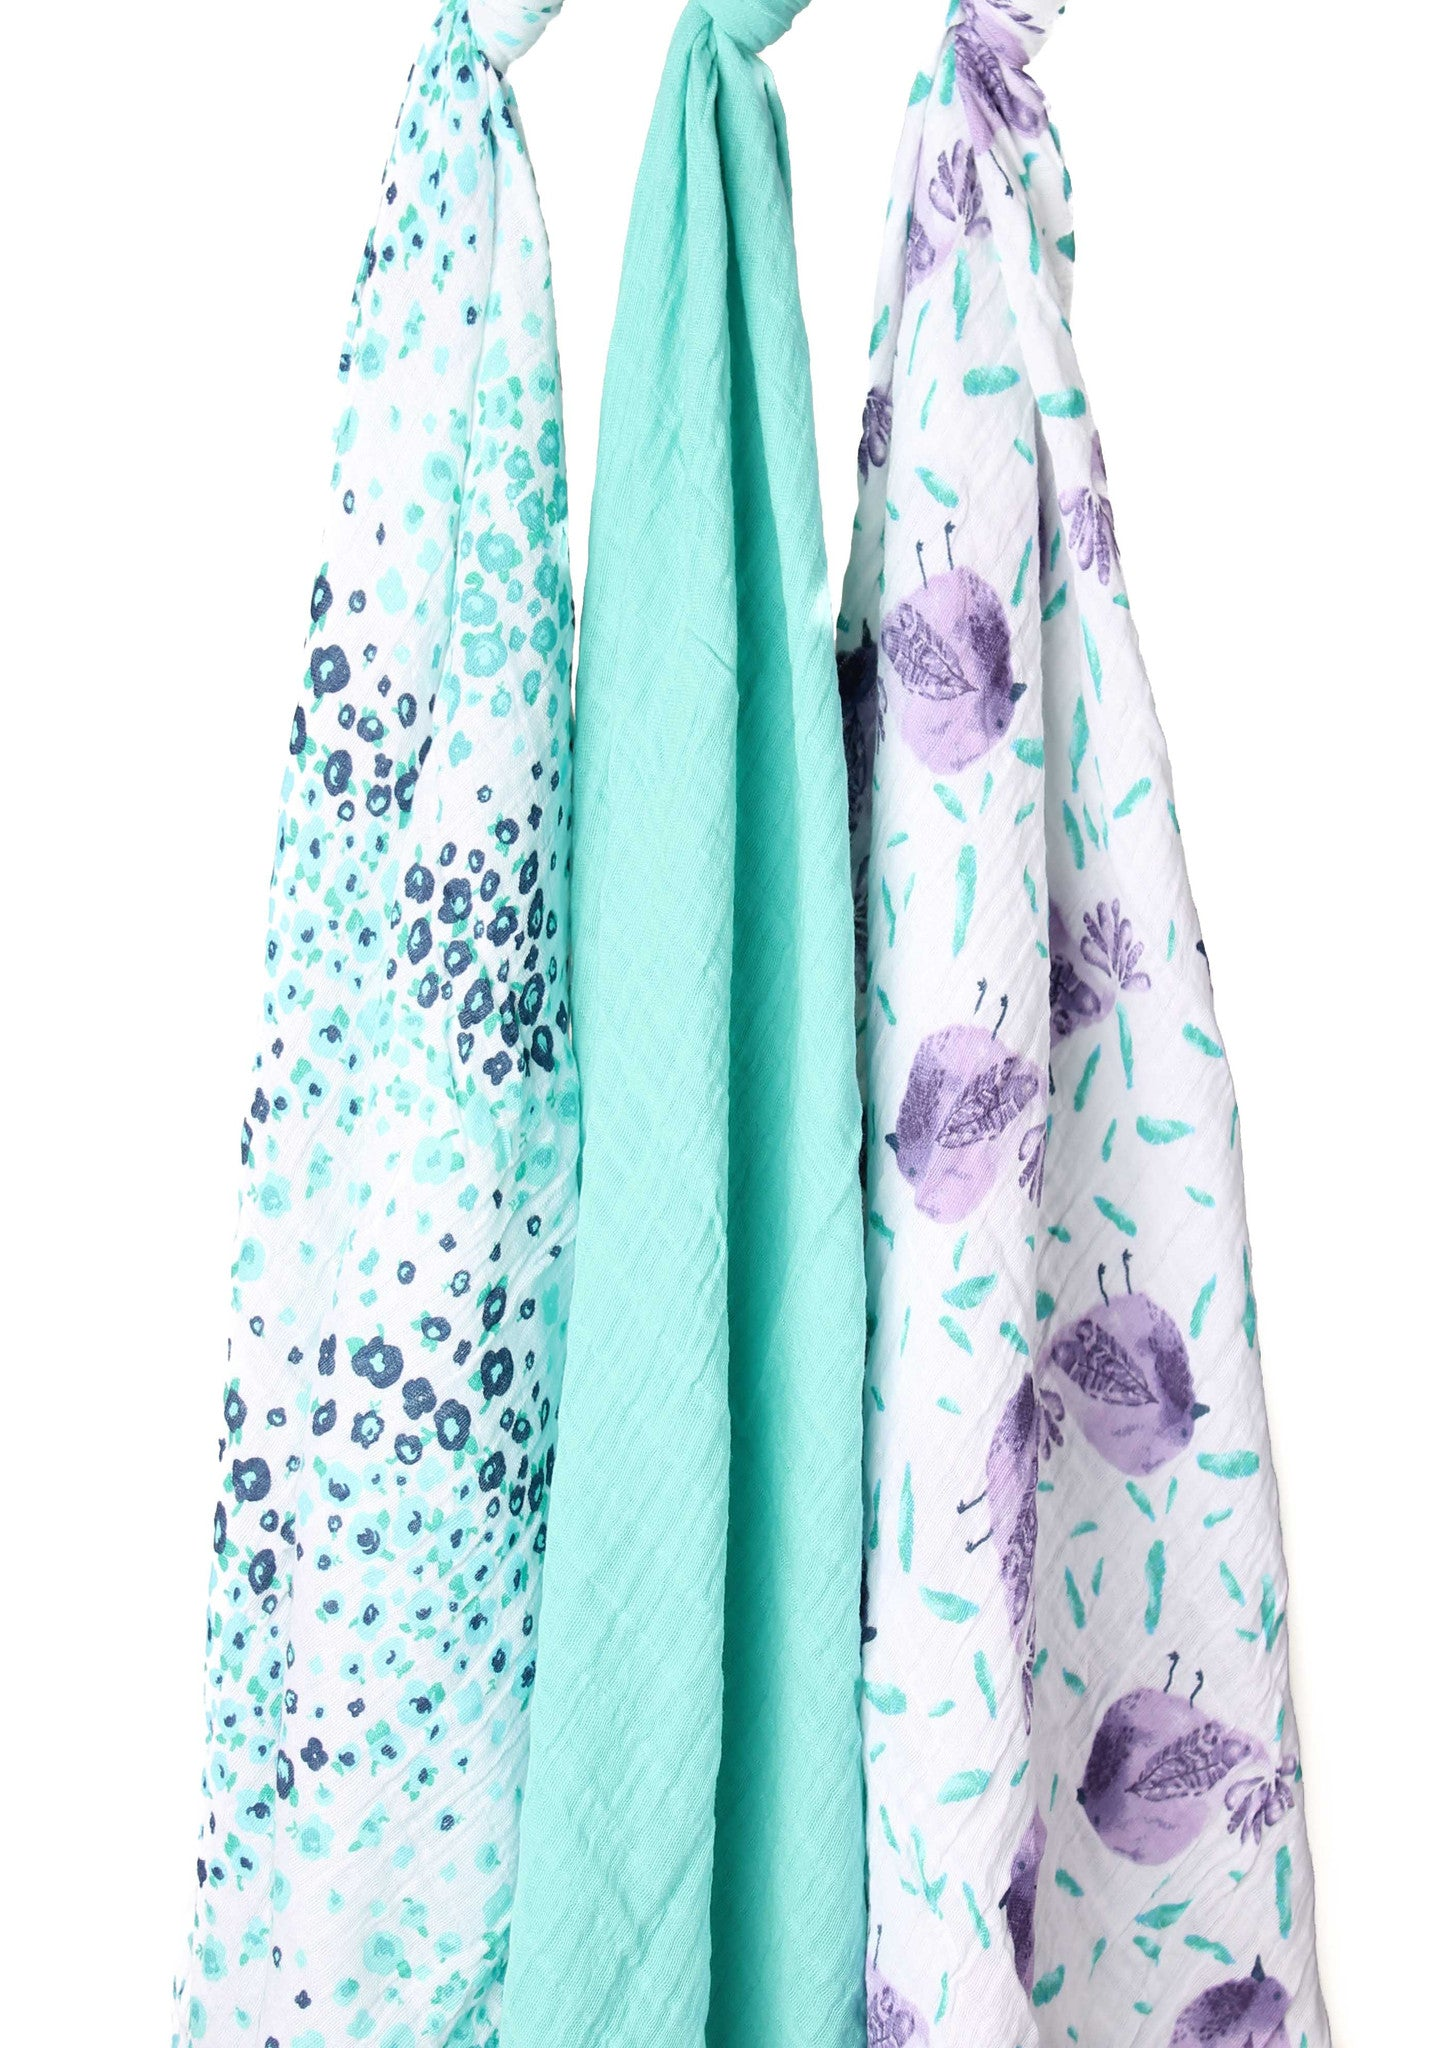 Aqua and Purple Birdie Muslin Swaddle Blanket Set 3 Pack, 100% Cotton New Baby Gift